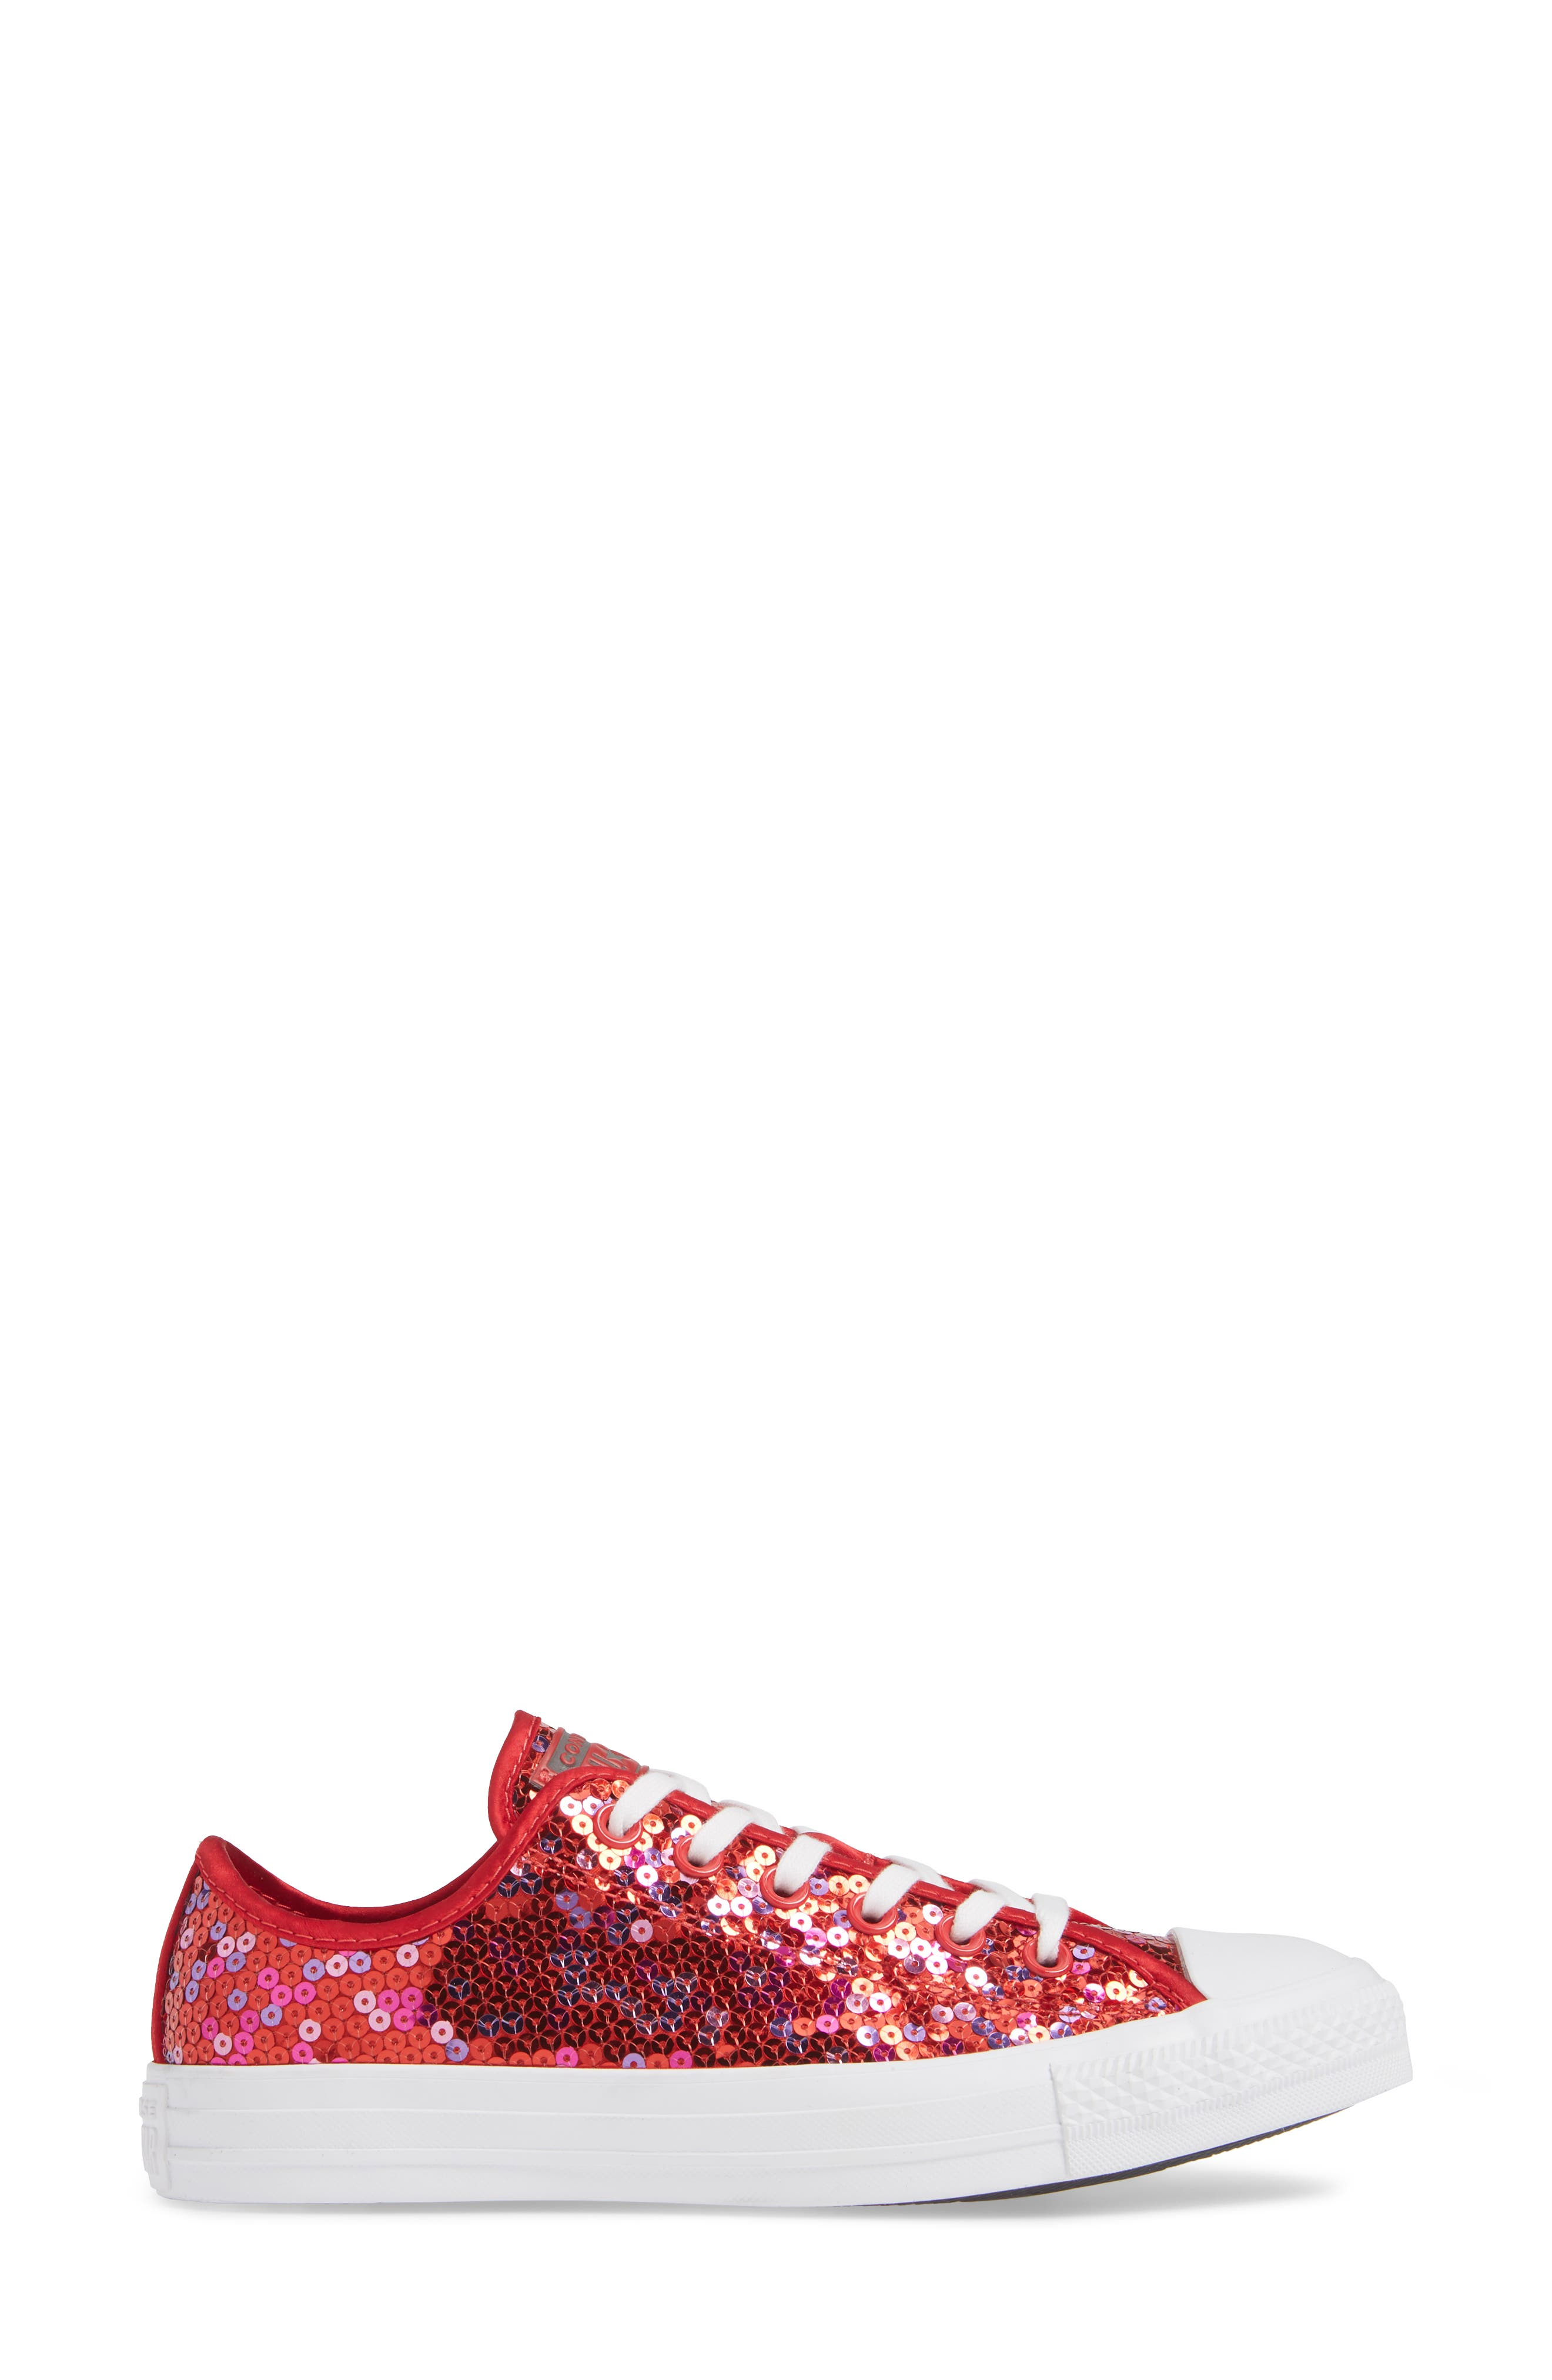 Chuck Taylor<sup>®</sup> All Star<sup>®</sup> Sequin Low Top Sneaker,                             Alternate thumbnail 3, color,                             RED CHERRY SEQUINS